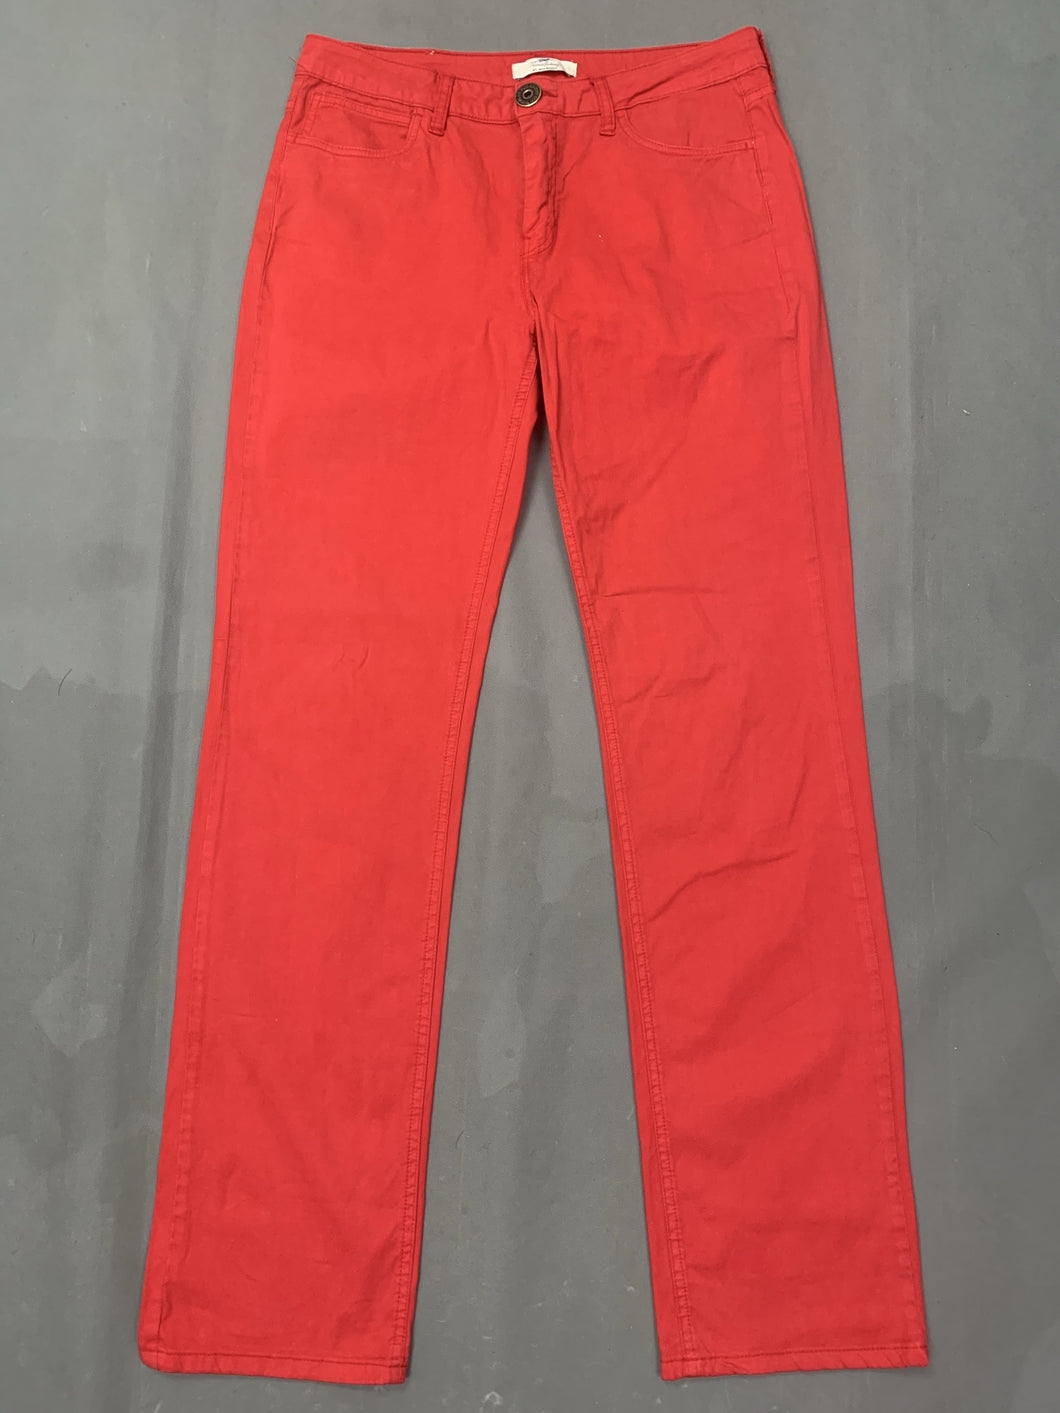 BURBERRY Ladies Red Straight Leg JEANS Size Waist 31